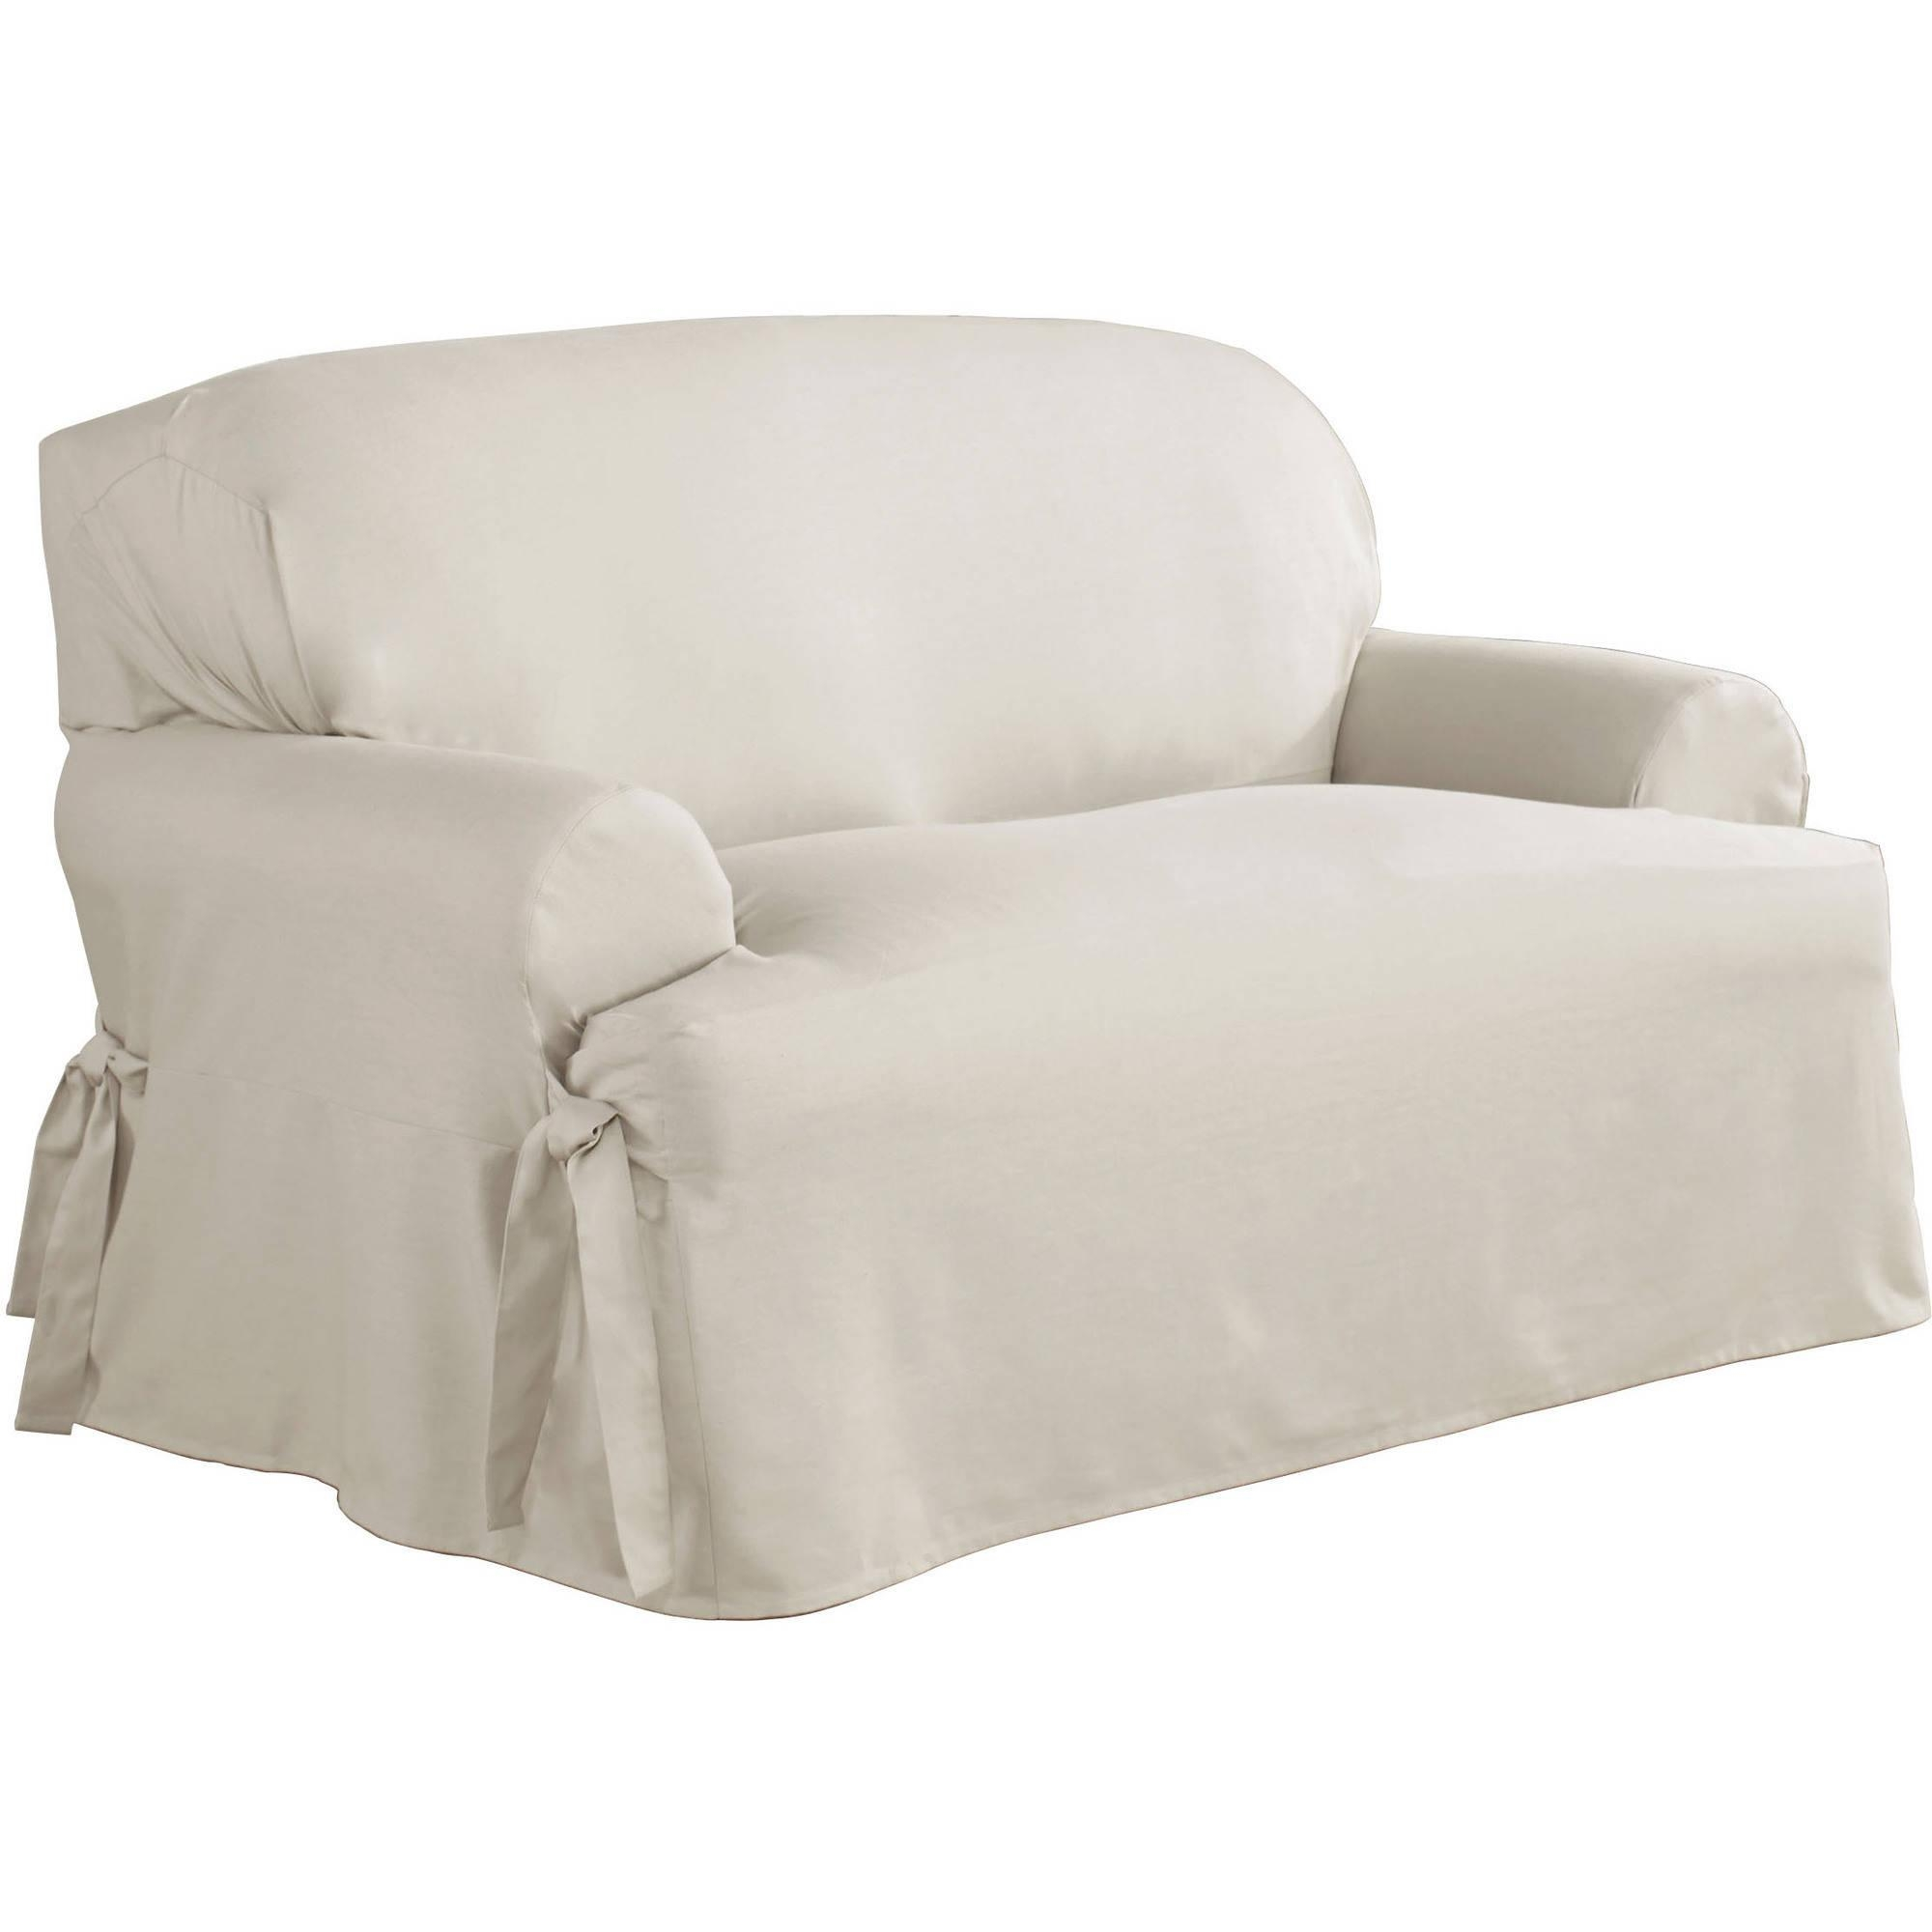 Serta Relaxed Fit Duck Furniture Slipcover, Loveseat 1 Piece T With Loveseat Slipcovers T Cushion (View 7 of 20)